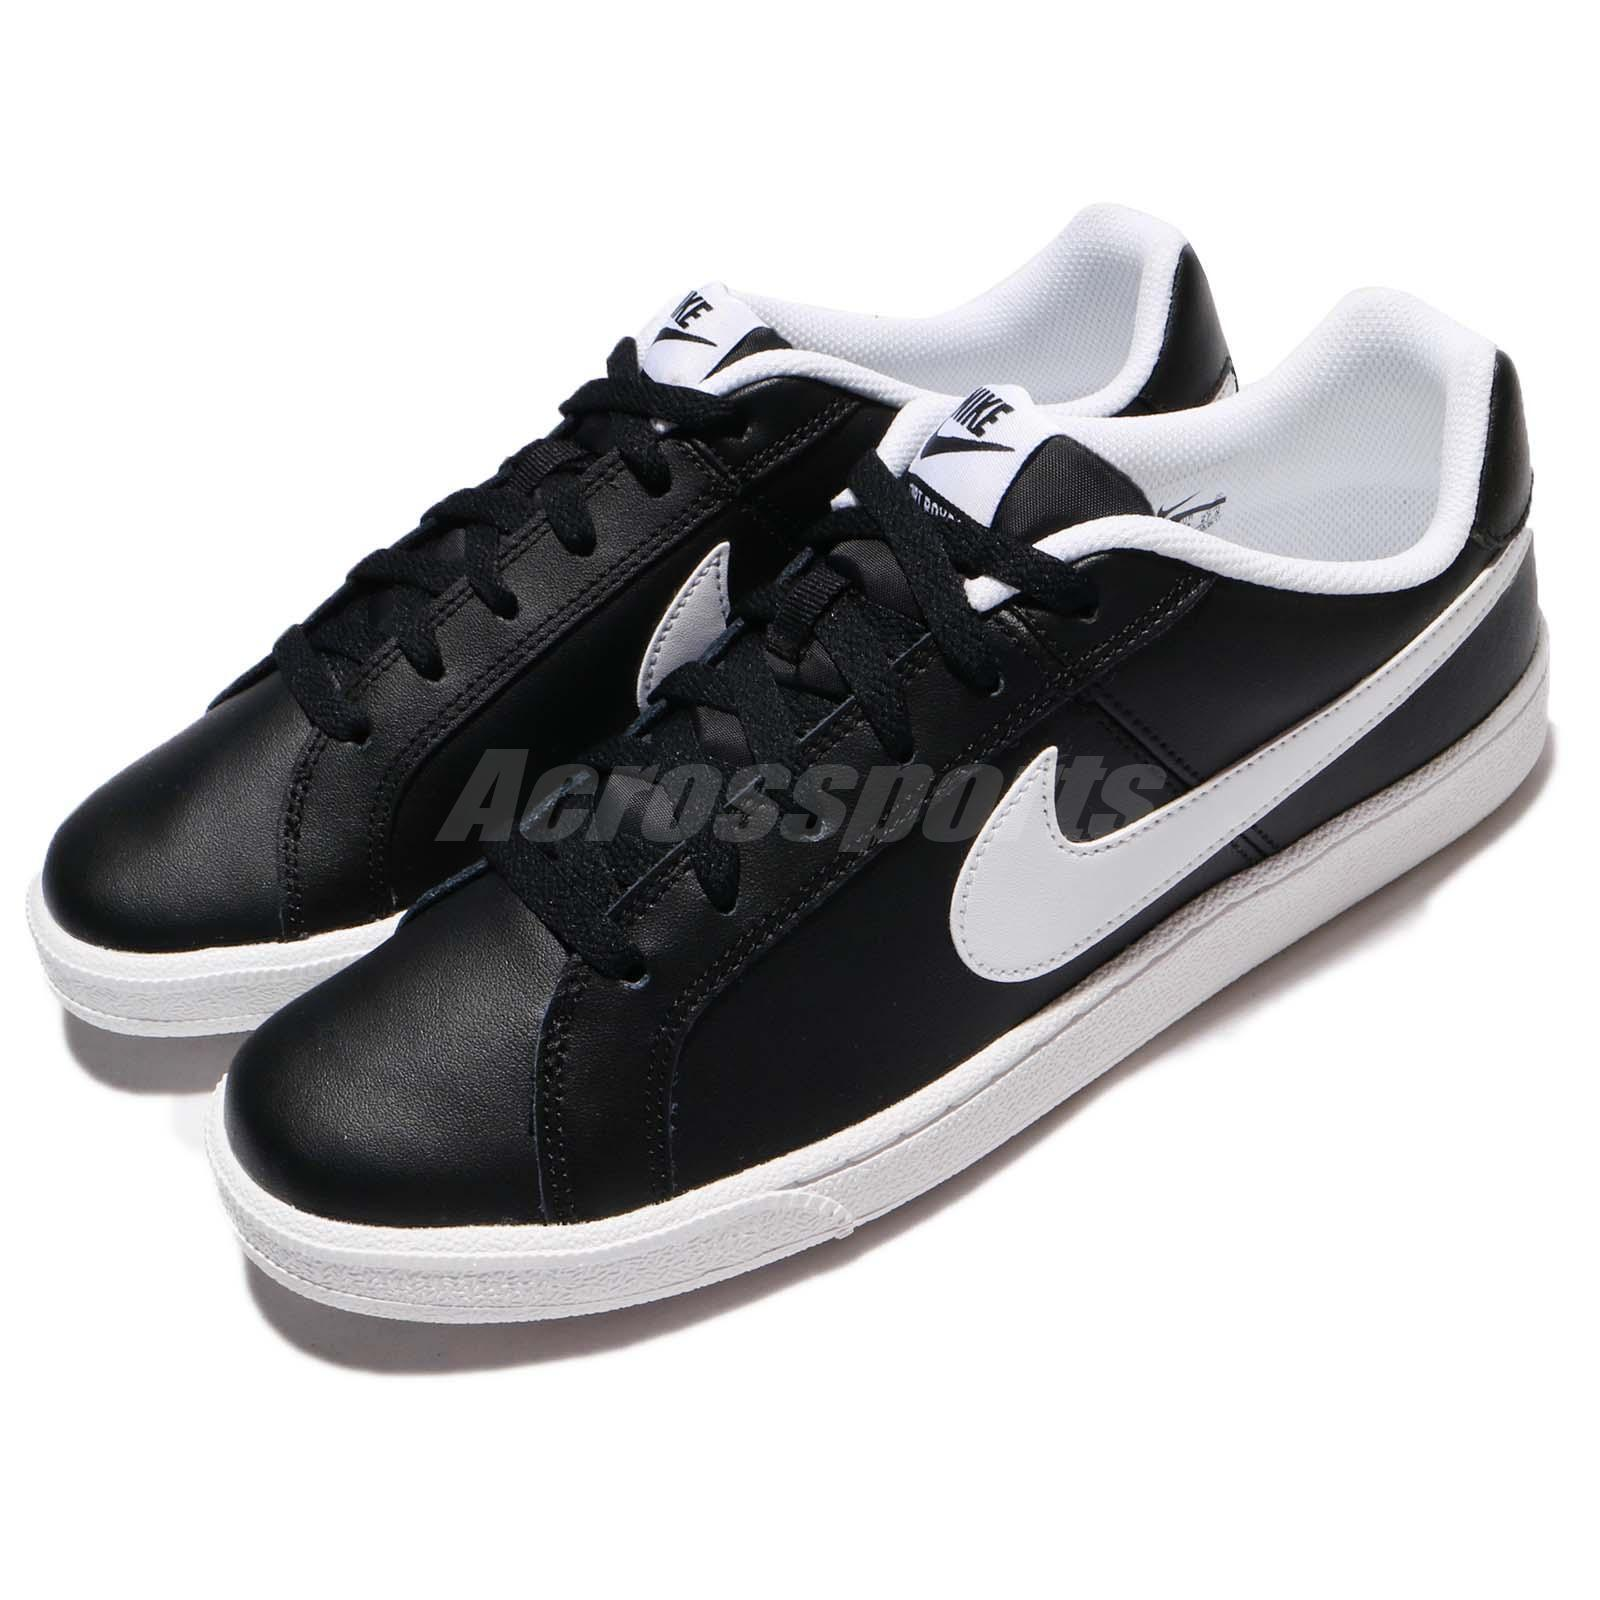 Nike Court Royale Black White Tennis Inspired Men Casual Shoes 749747-010 Wild casual shoes